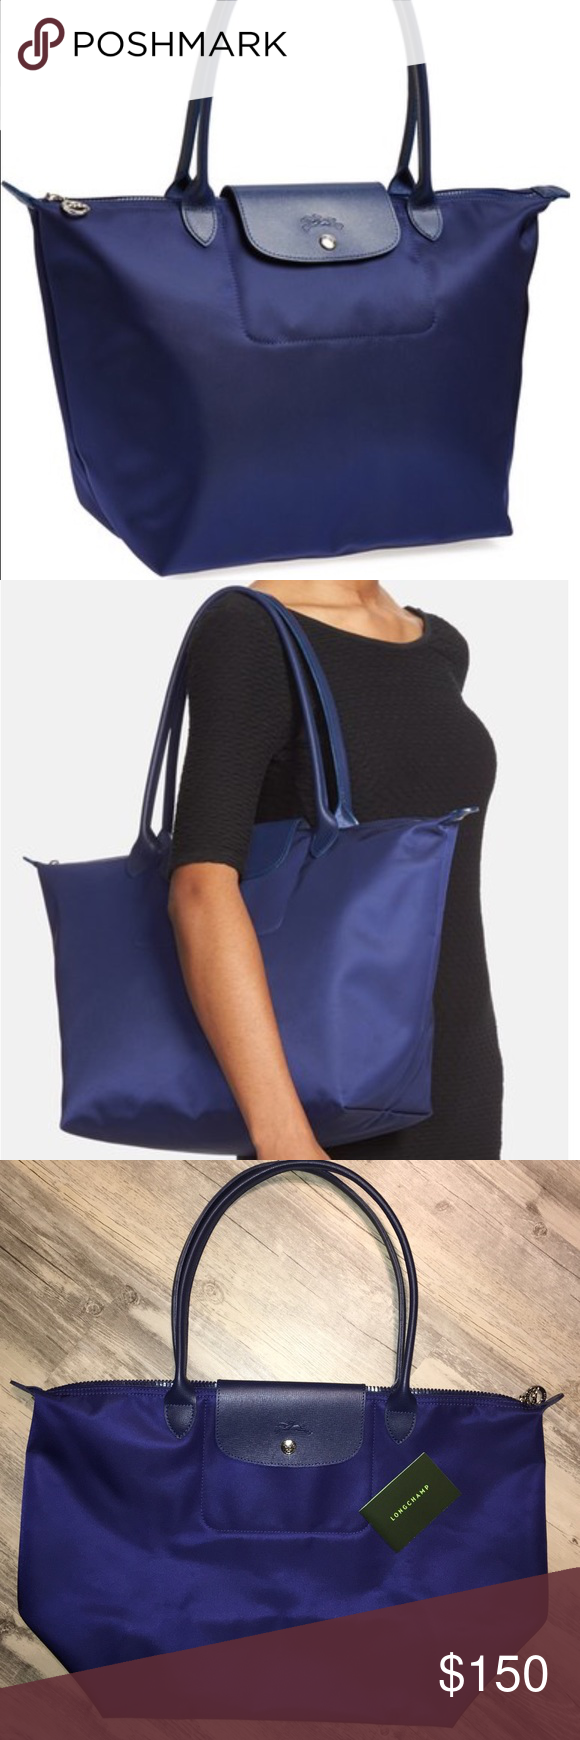 fd66a4f06ff6 Longchamp large Le Pliage Neo nylon tote bag purse Brand new with out tags  . 100% Authentic . Color is navy . The straps are navy also .